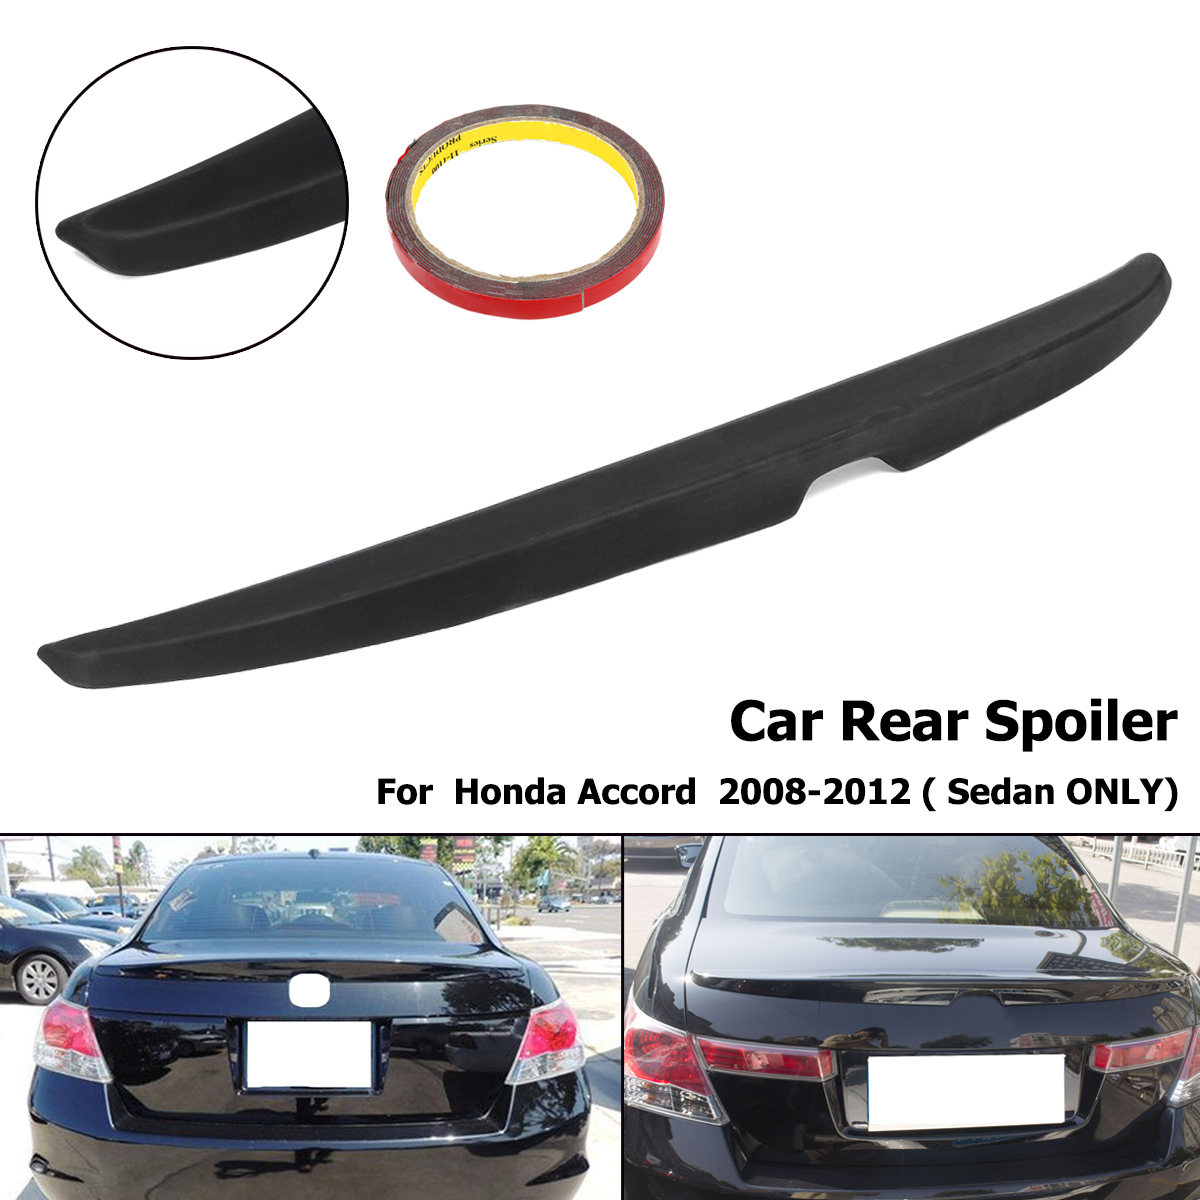 купить Matte Black Unpainted Rear Trunk Lip Wing Spoiler For Honda for Accord 4DR Sedan 2008 2009 2010 2011 2012 ABS Plastic онлайн